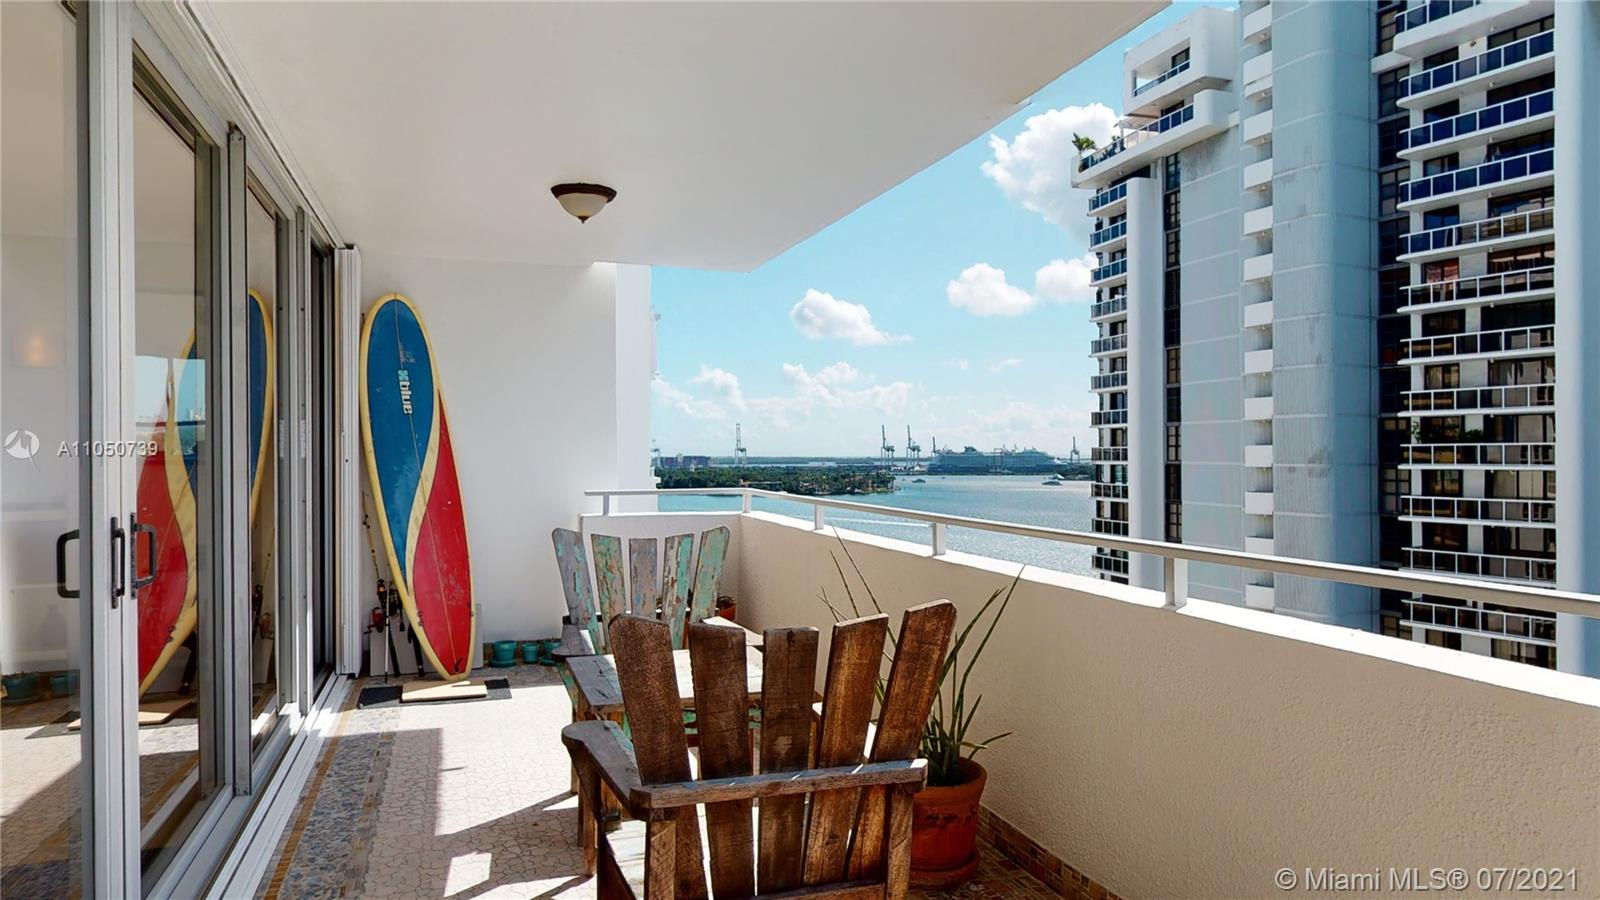 40 YR re-certified and well underway for clearing 50 YR in 2022. Clear blue skies, abundance of natural light,  spacious rooms, ample storage, beautiful bay and marina views.  Porcelain tile floors, impact windows/doors, ensuite bathrooms, HUGE balcony, and TONS of storage. Building renovations are underway-NEW hallways (completion 12/21), entry doors, lighting, wallpaper, elevators, fire sprinkler system, AC and more.  Perfect location to enjoy the best of the Beaches and MIA. Everything you want to see or do-minutes away. Pet friendly building, and you can install a washer/dryer in the unit.